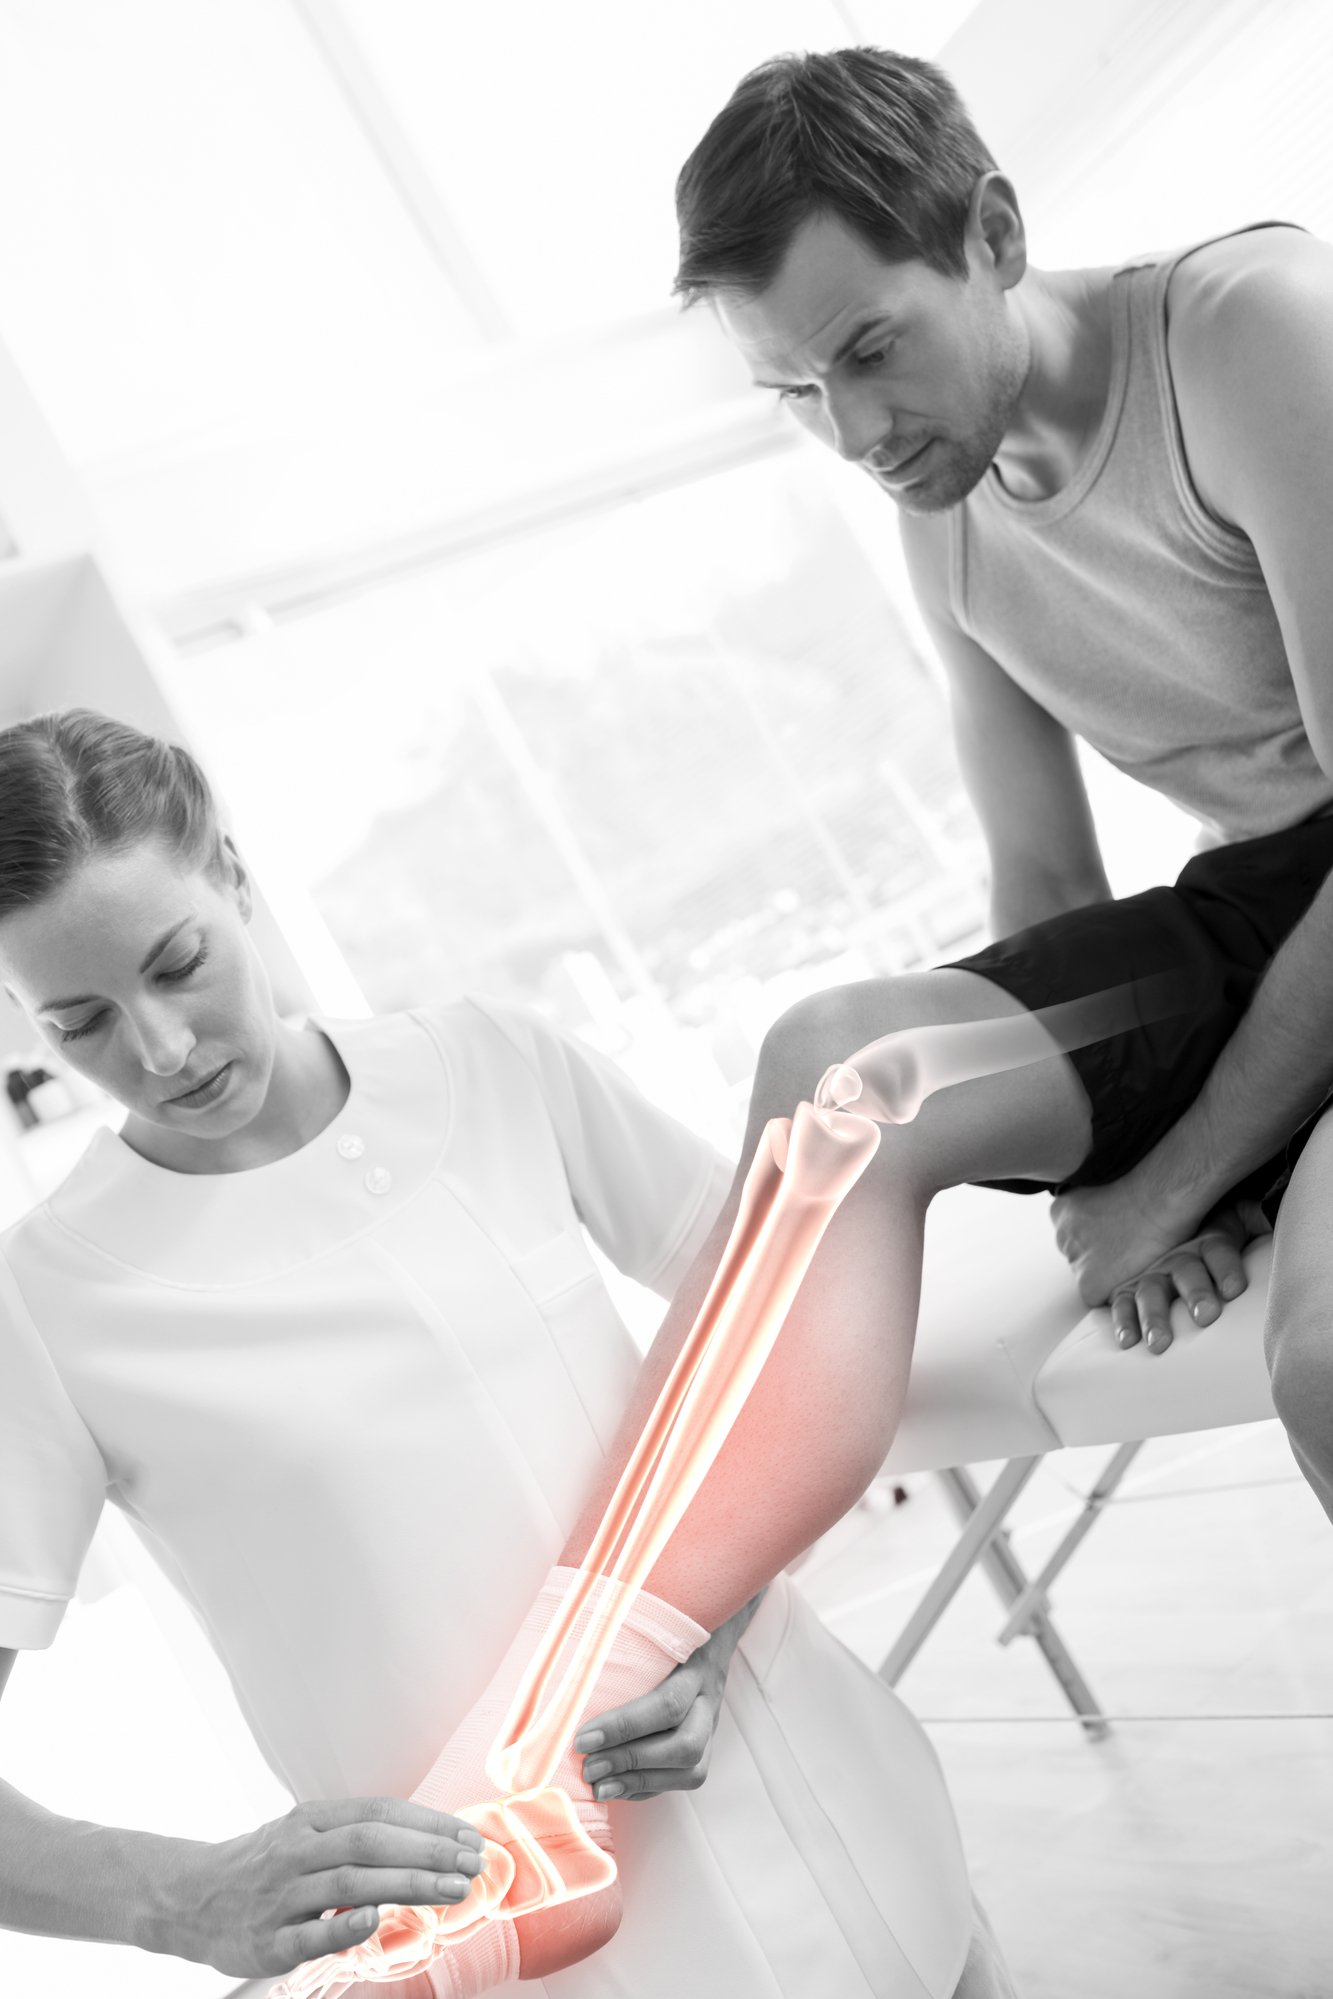 Physiotherapy treatment and recovery